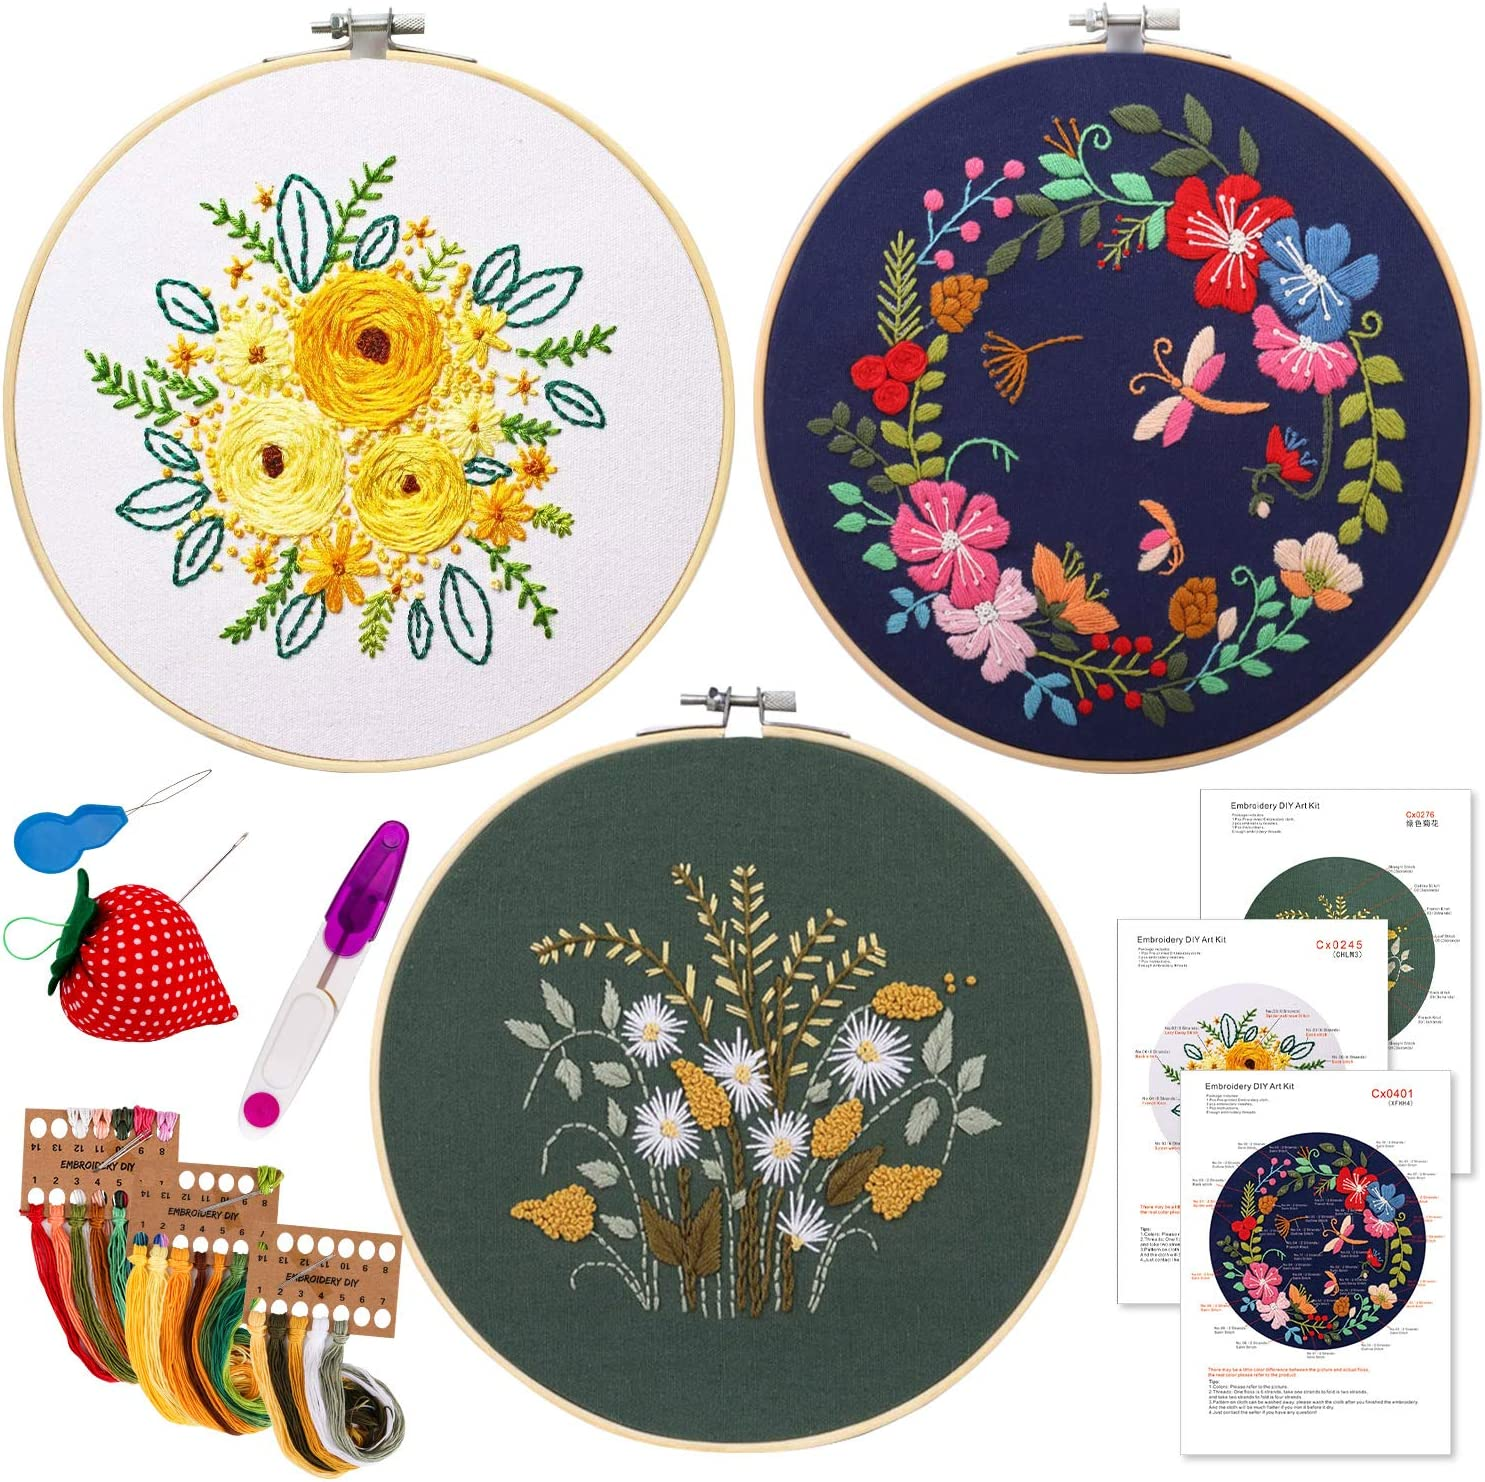 kit 1 Embroidery Starter Kit with Pattern and Instructions,Cross Stitch Kit Full Range of Stamped Embroidery Kits for DIY Beginner Starter